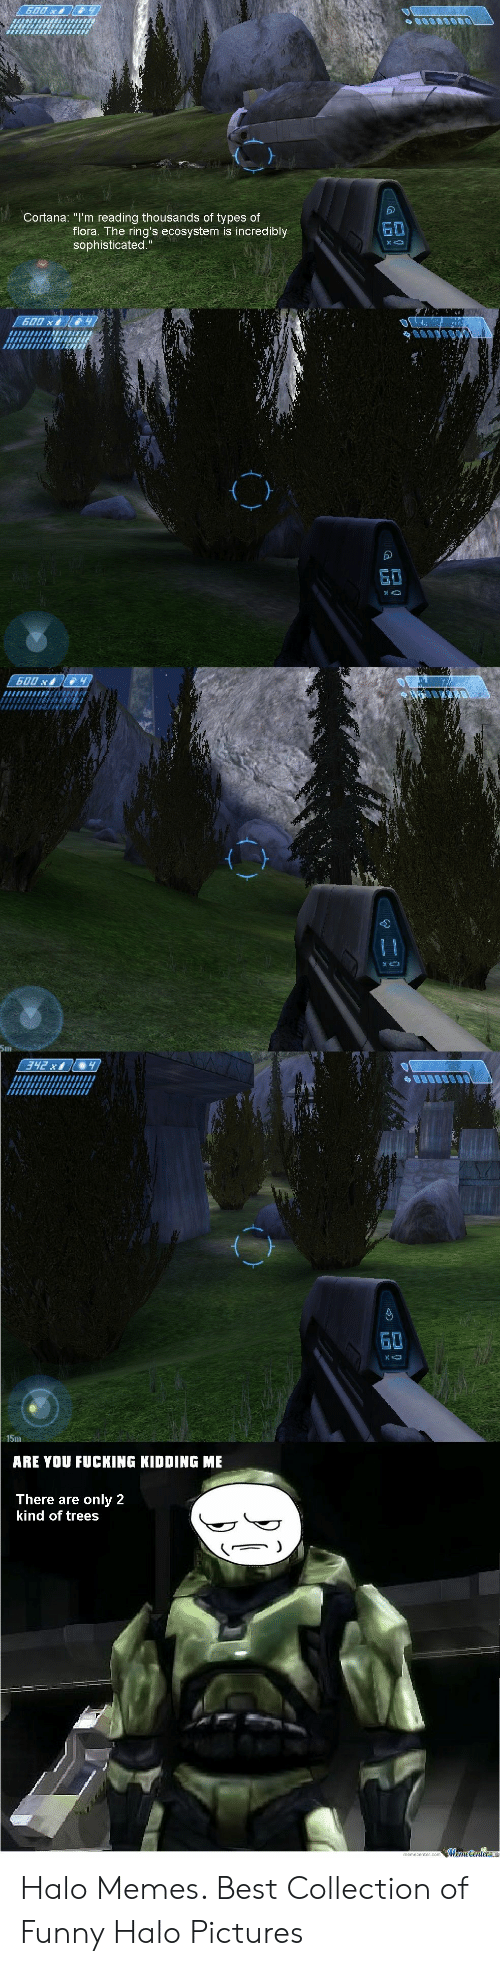 "Fucking, Funny, and Halo: Cortana: ""I'm reading thousands of types of  flora. The ring's ecosystem is incredibly  sophisticated.""  S0  15m  ARE YOU FUCKING KIDDING ME  There are only 2  kind of trees Halo Memes. Best Collection of Funny Halo Pictures"